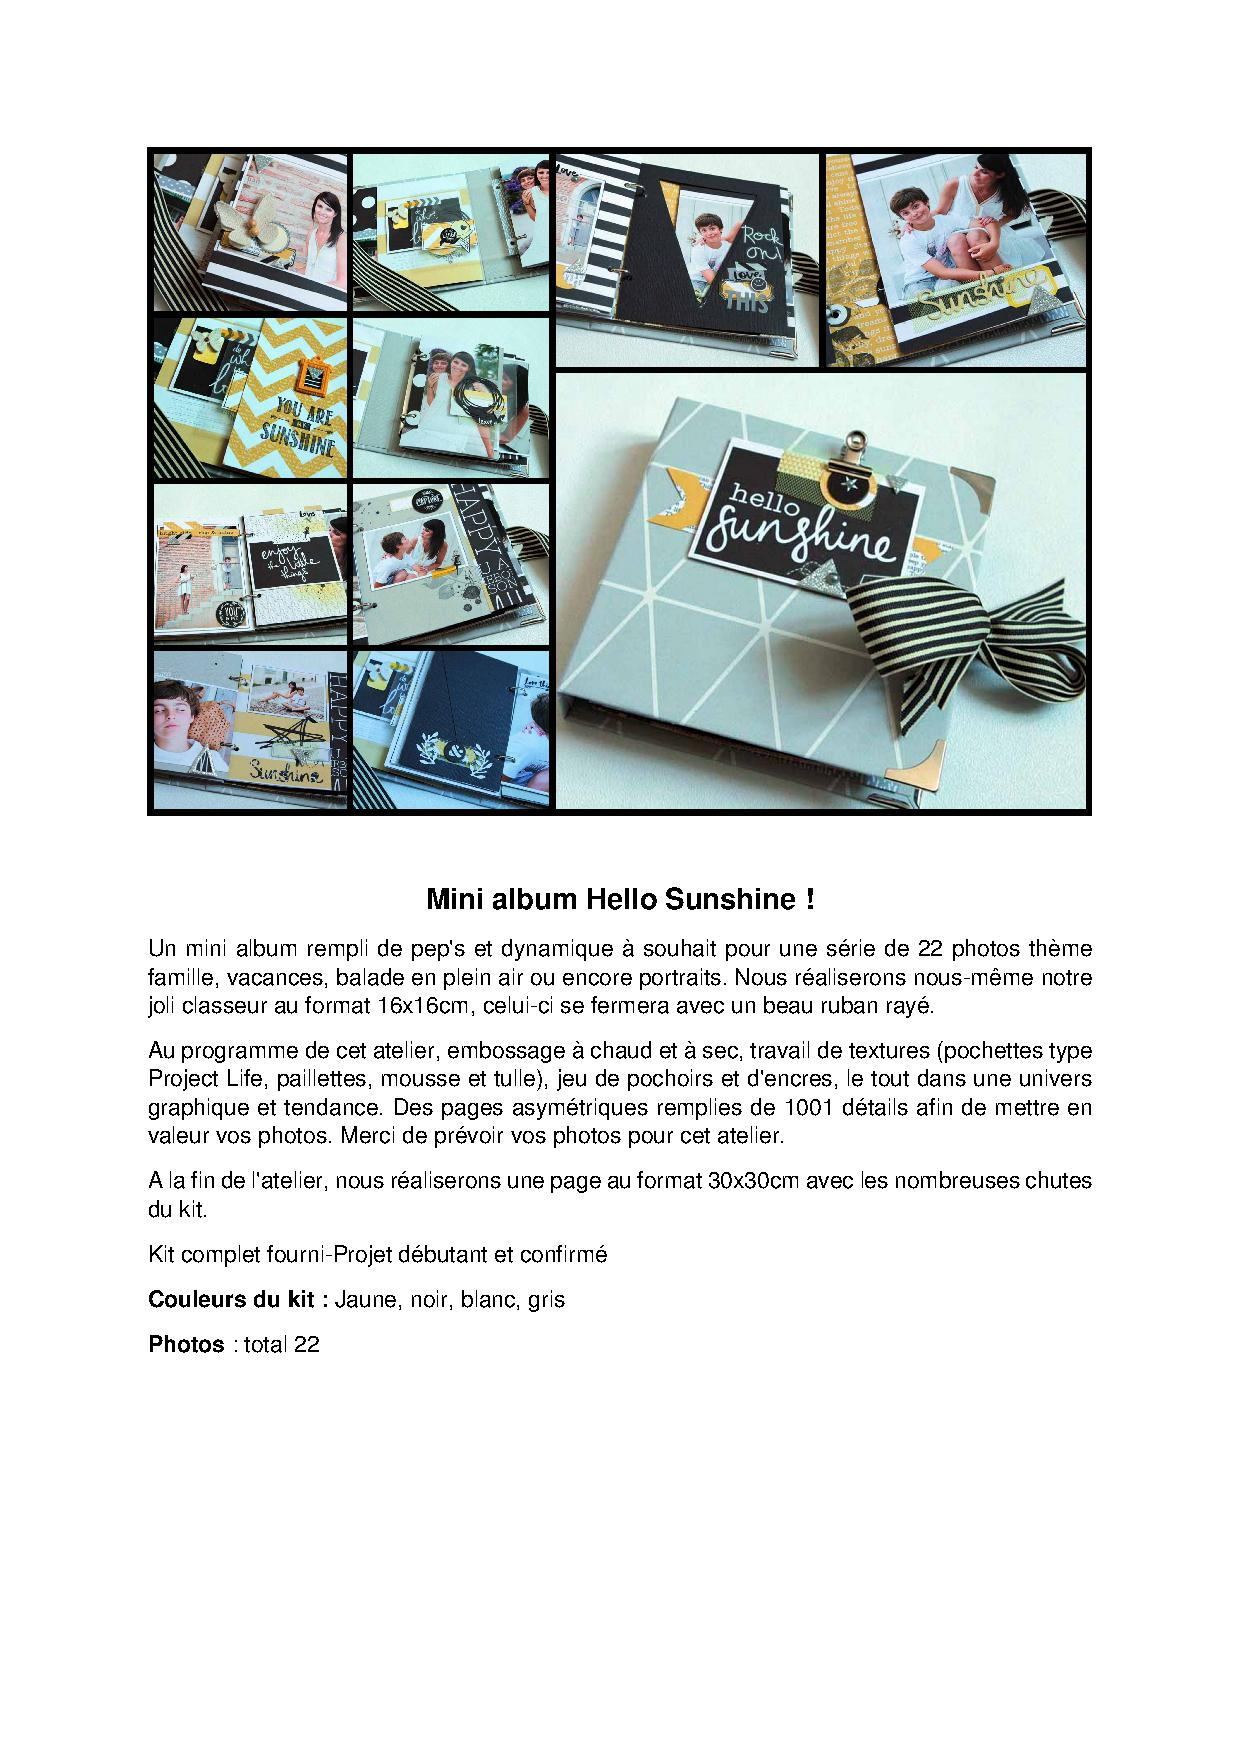 Mini album Hello Sunshine brève description Arial.jpg